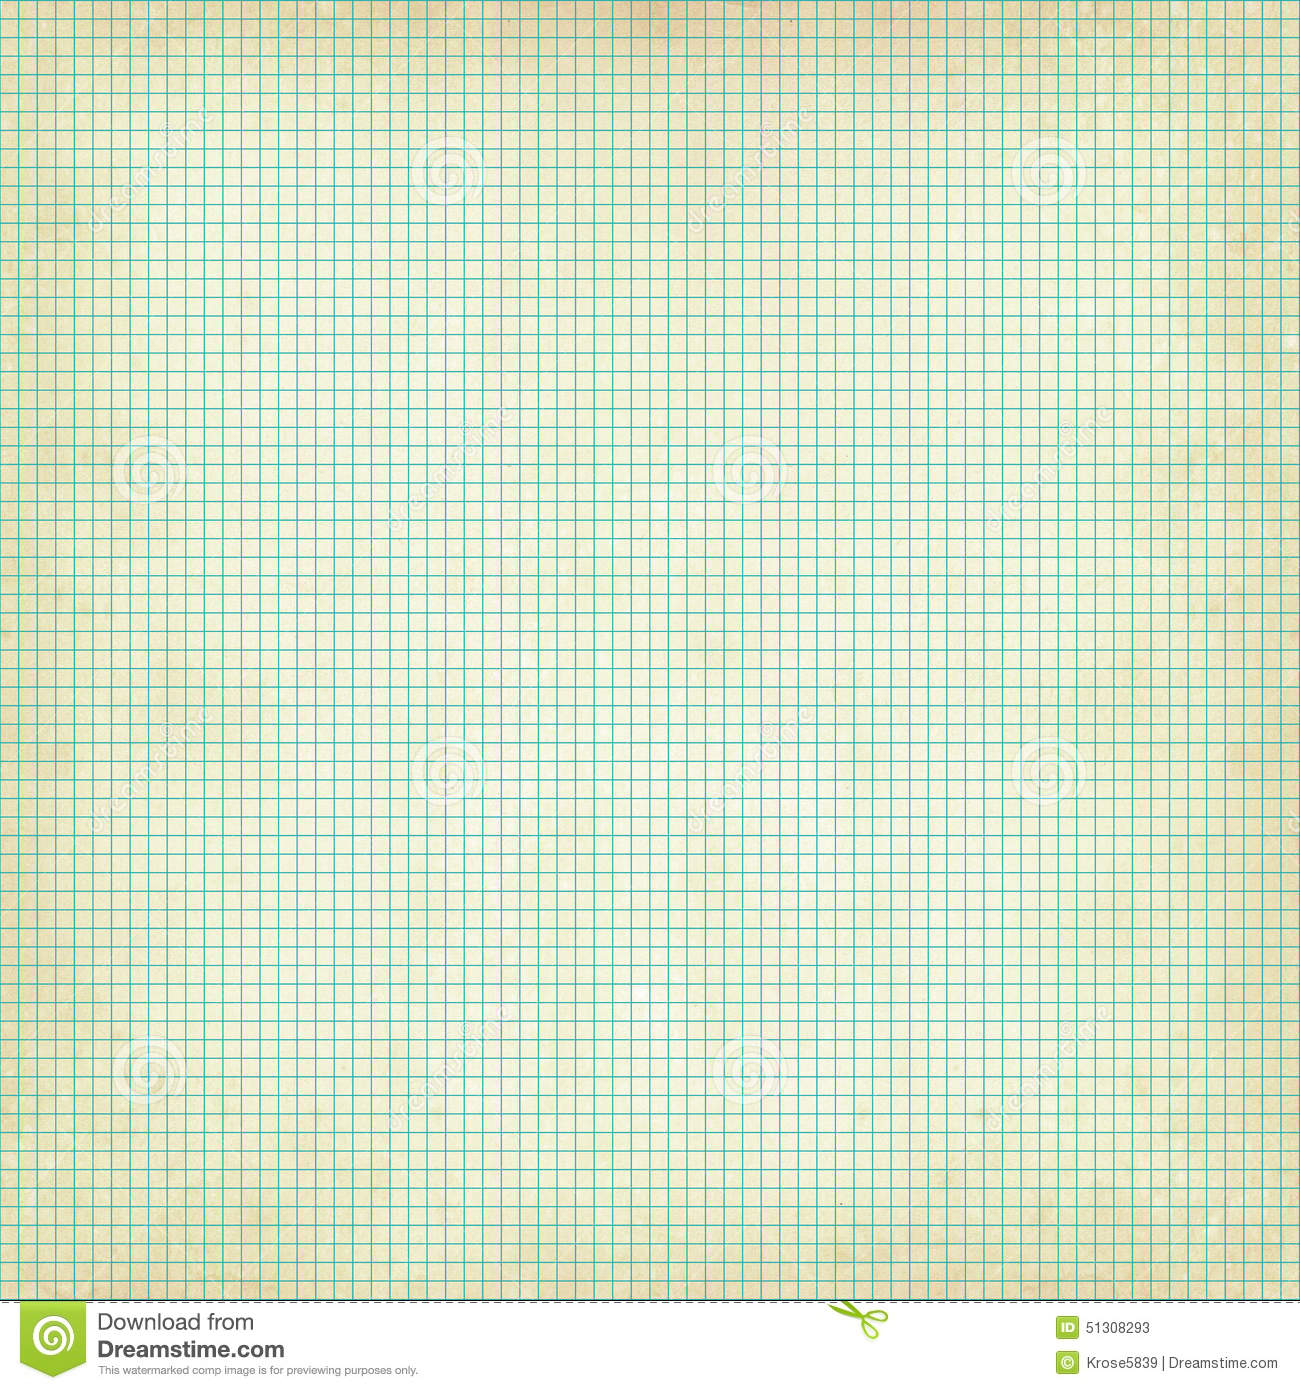 graph paper grid with grunge texture stock photo